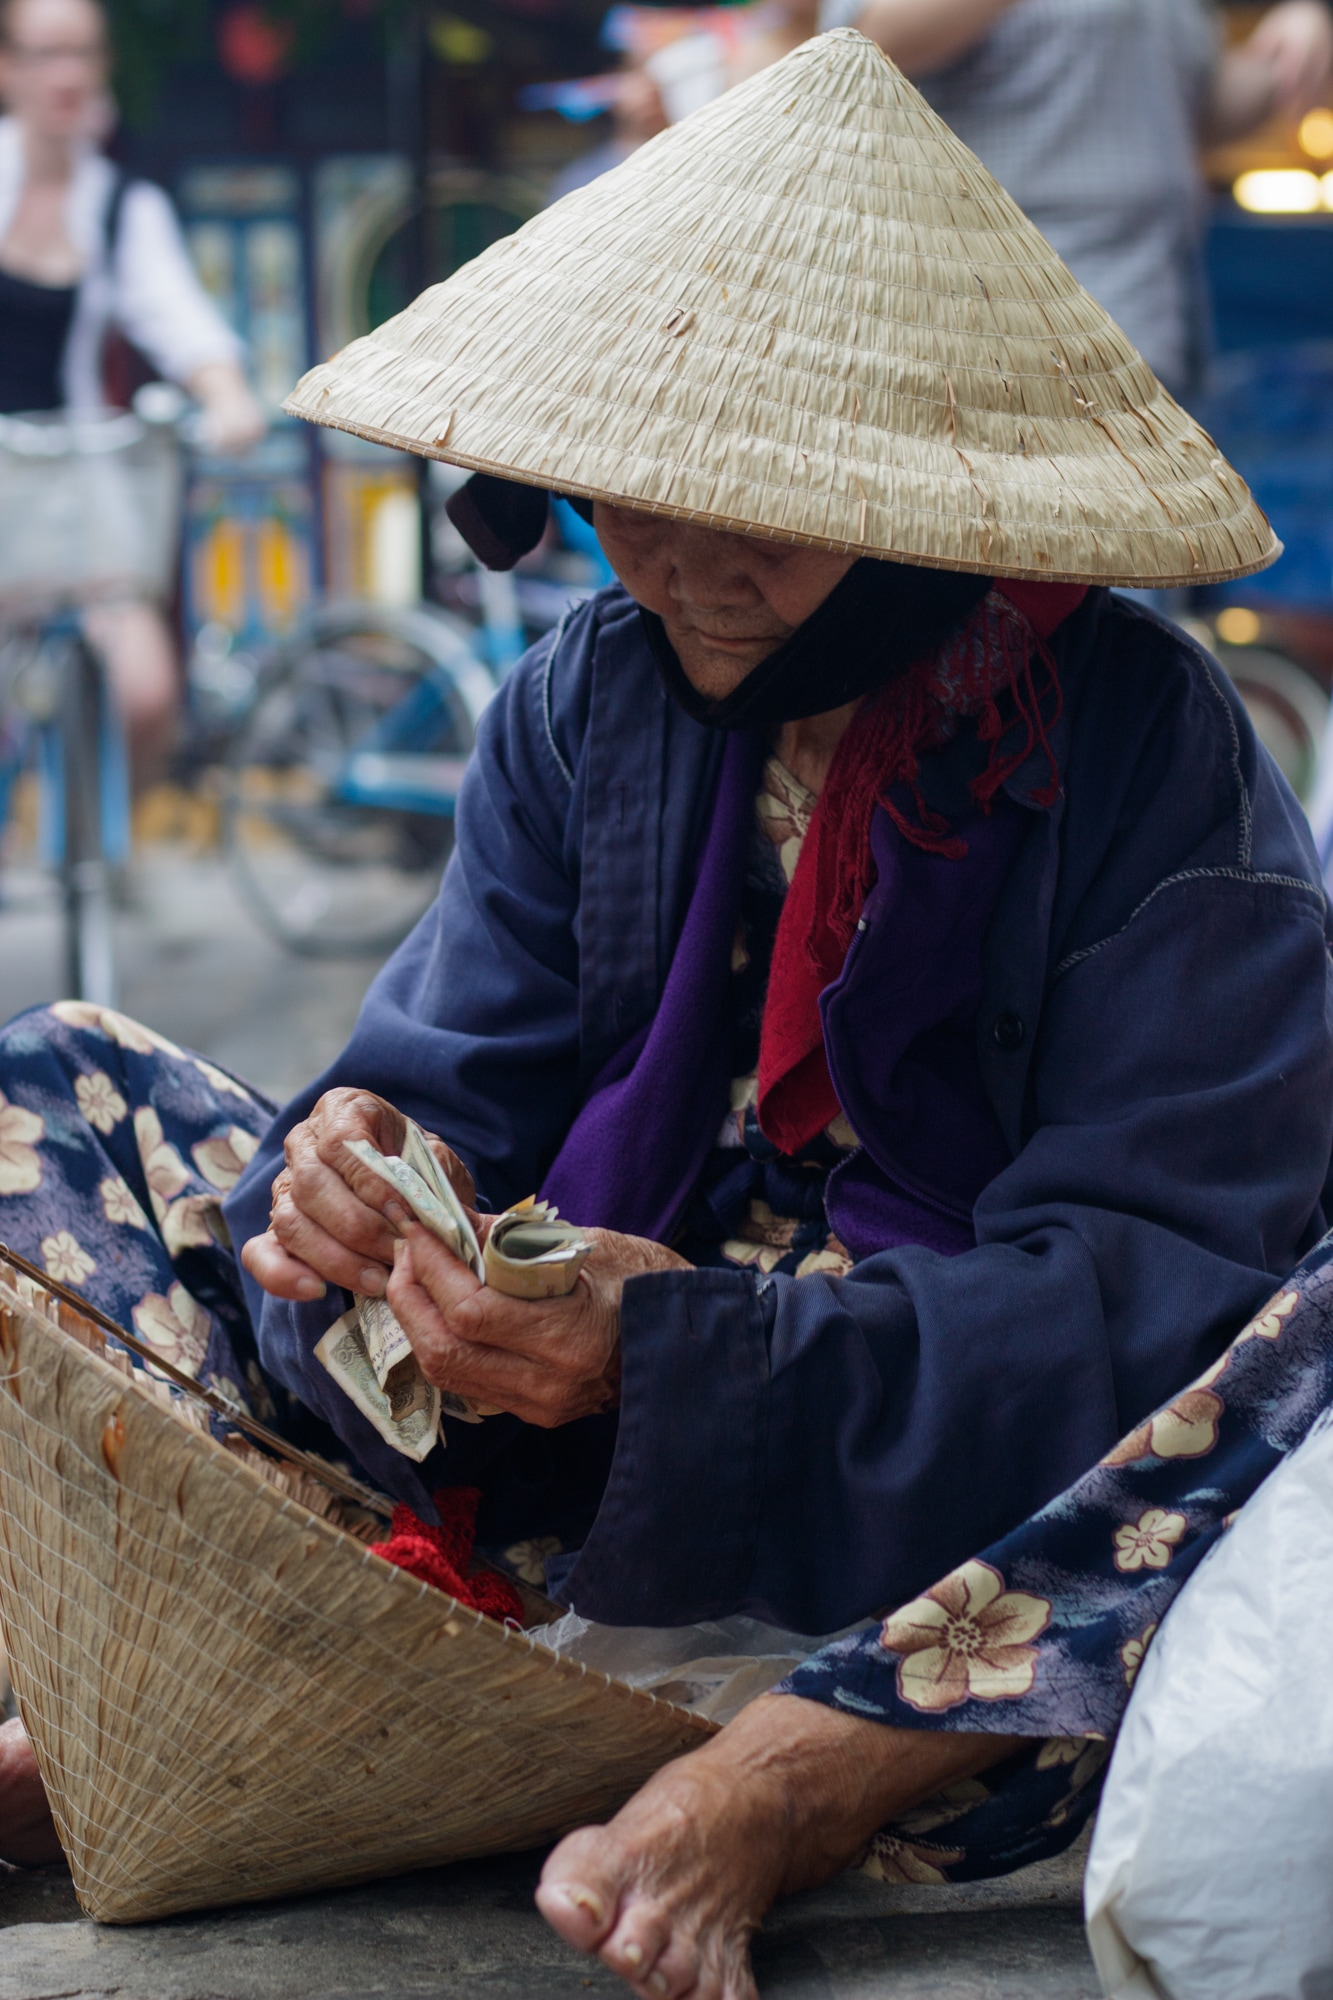 An elderly vendor counts money sitting on the side of the road in Hoi An.